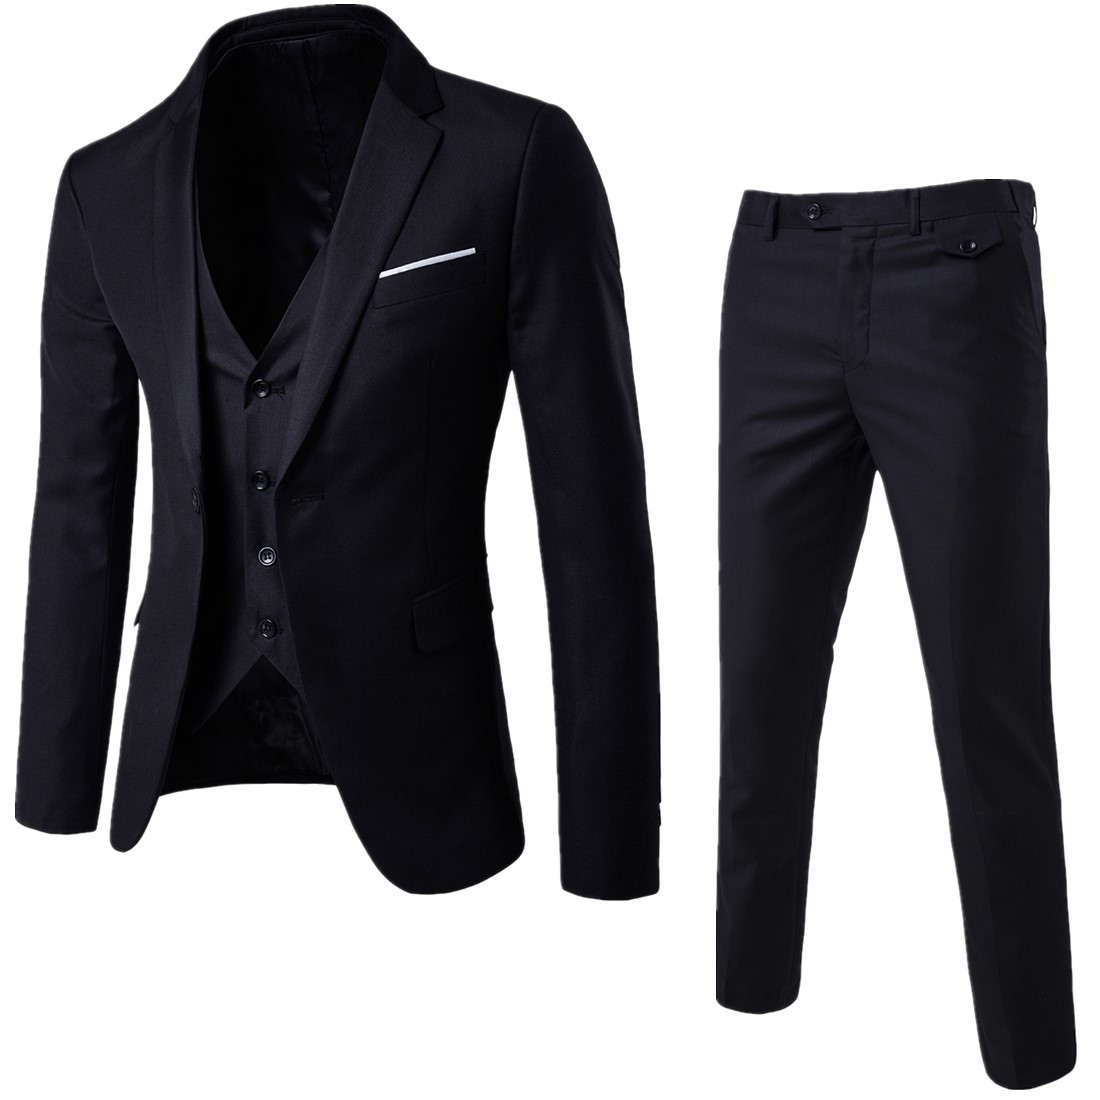 2019 Spring Clothing High Quality Business Leisure Suit Three-piece Set Groom Best Man Wedding One-Button Suit Set